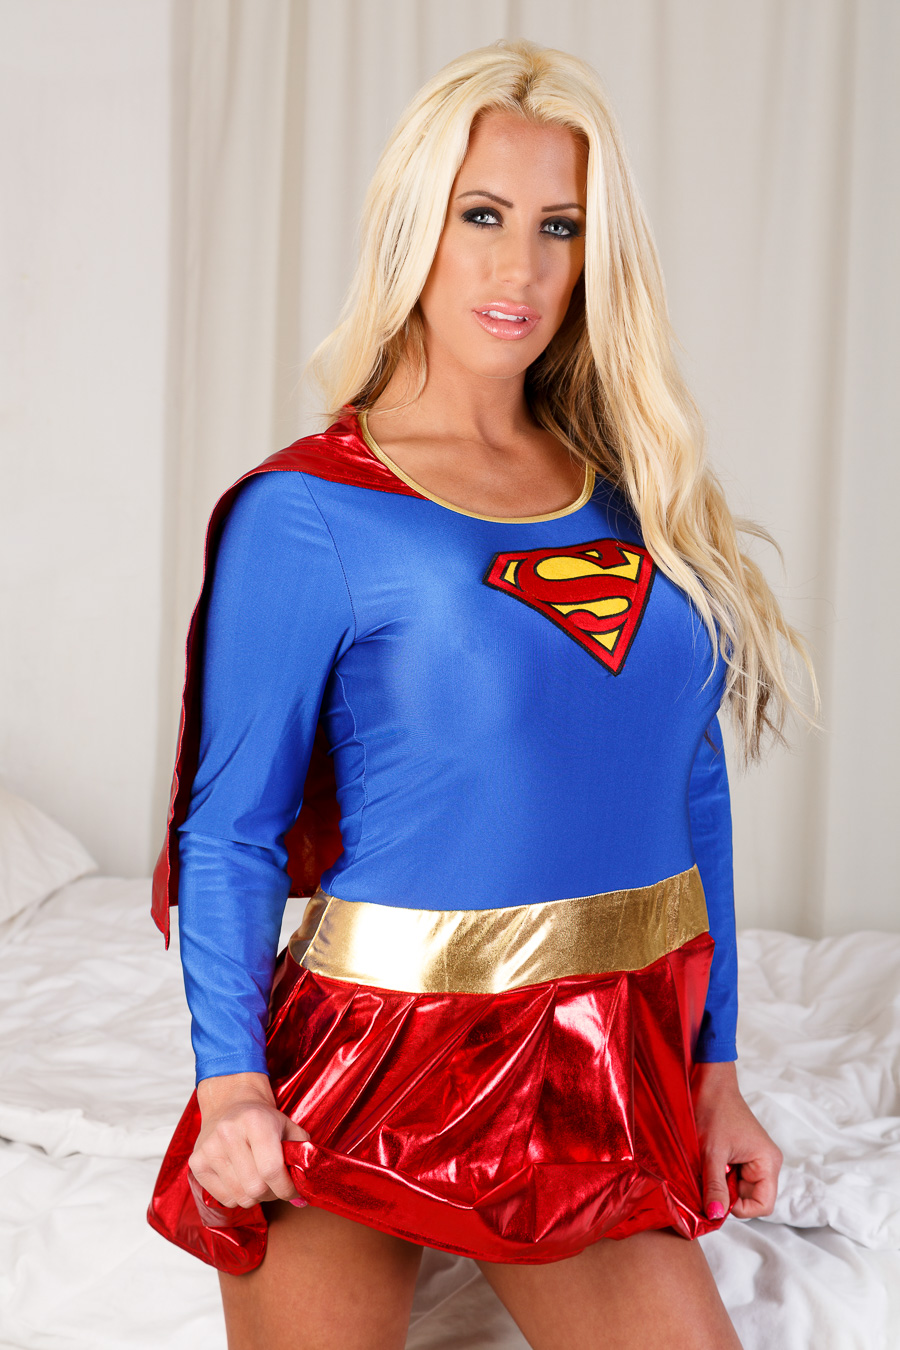 Supergirl / Photography by Dave A / Uploaded 26th February 2015 @ 11:12 AM